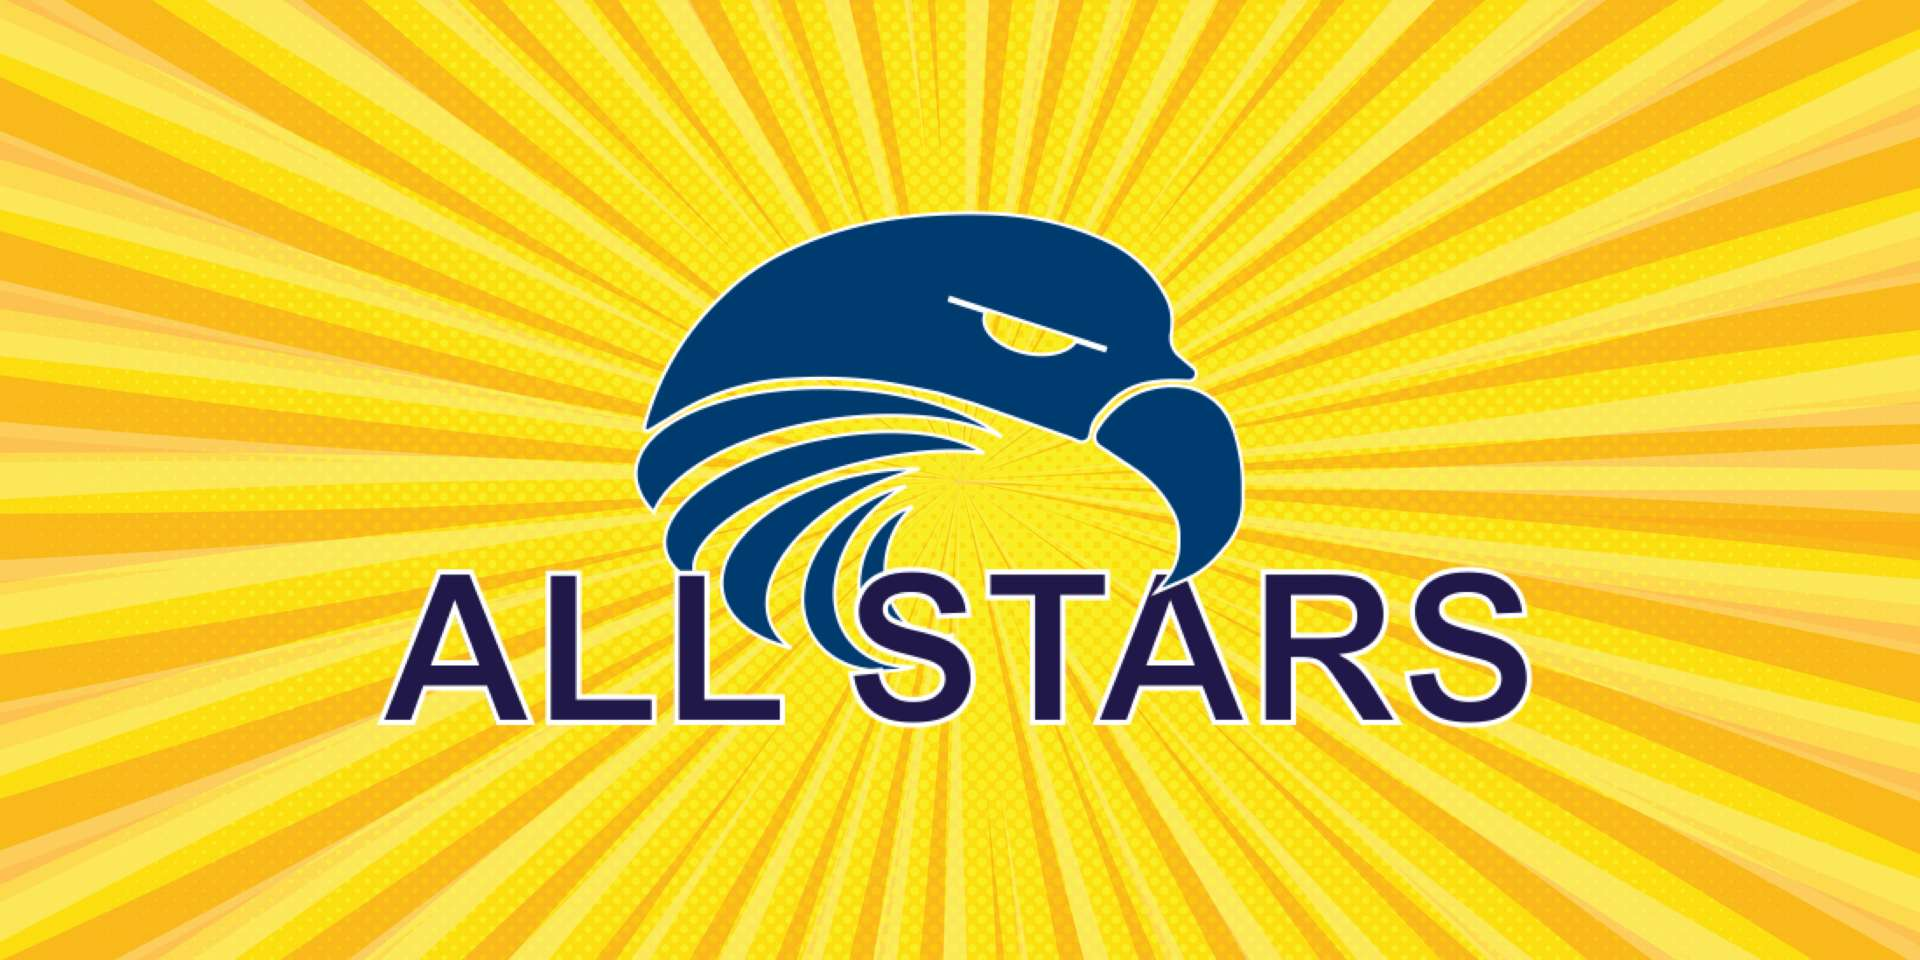 Read more about the article ⭐️⭐️⭐️ U11 All Stars! ⭐️⭐️⭐️